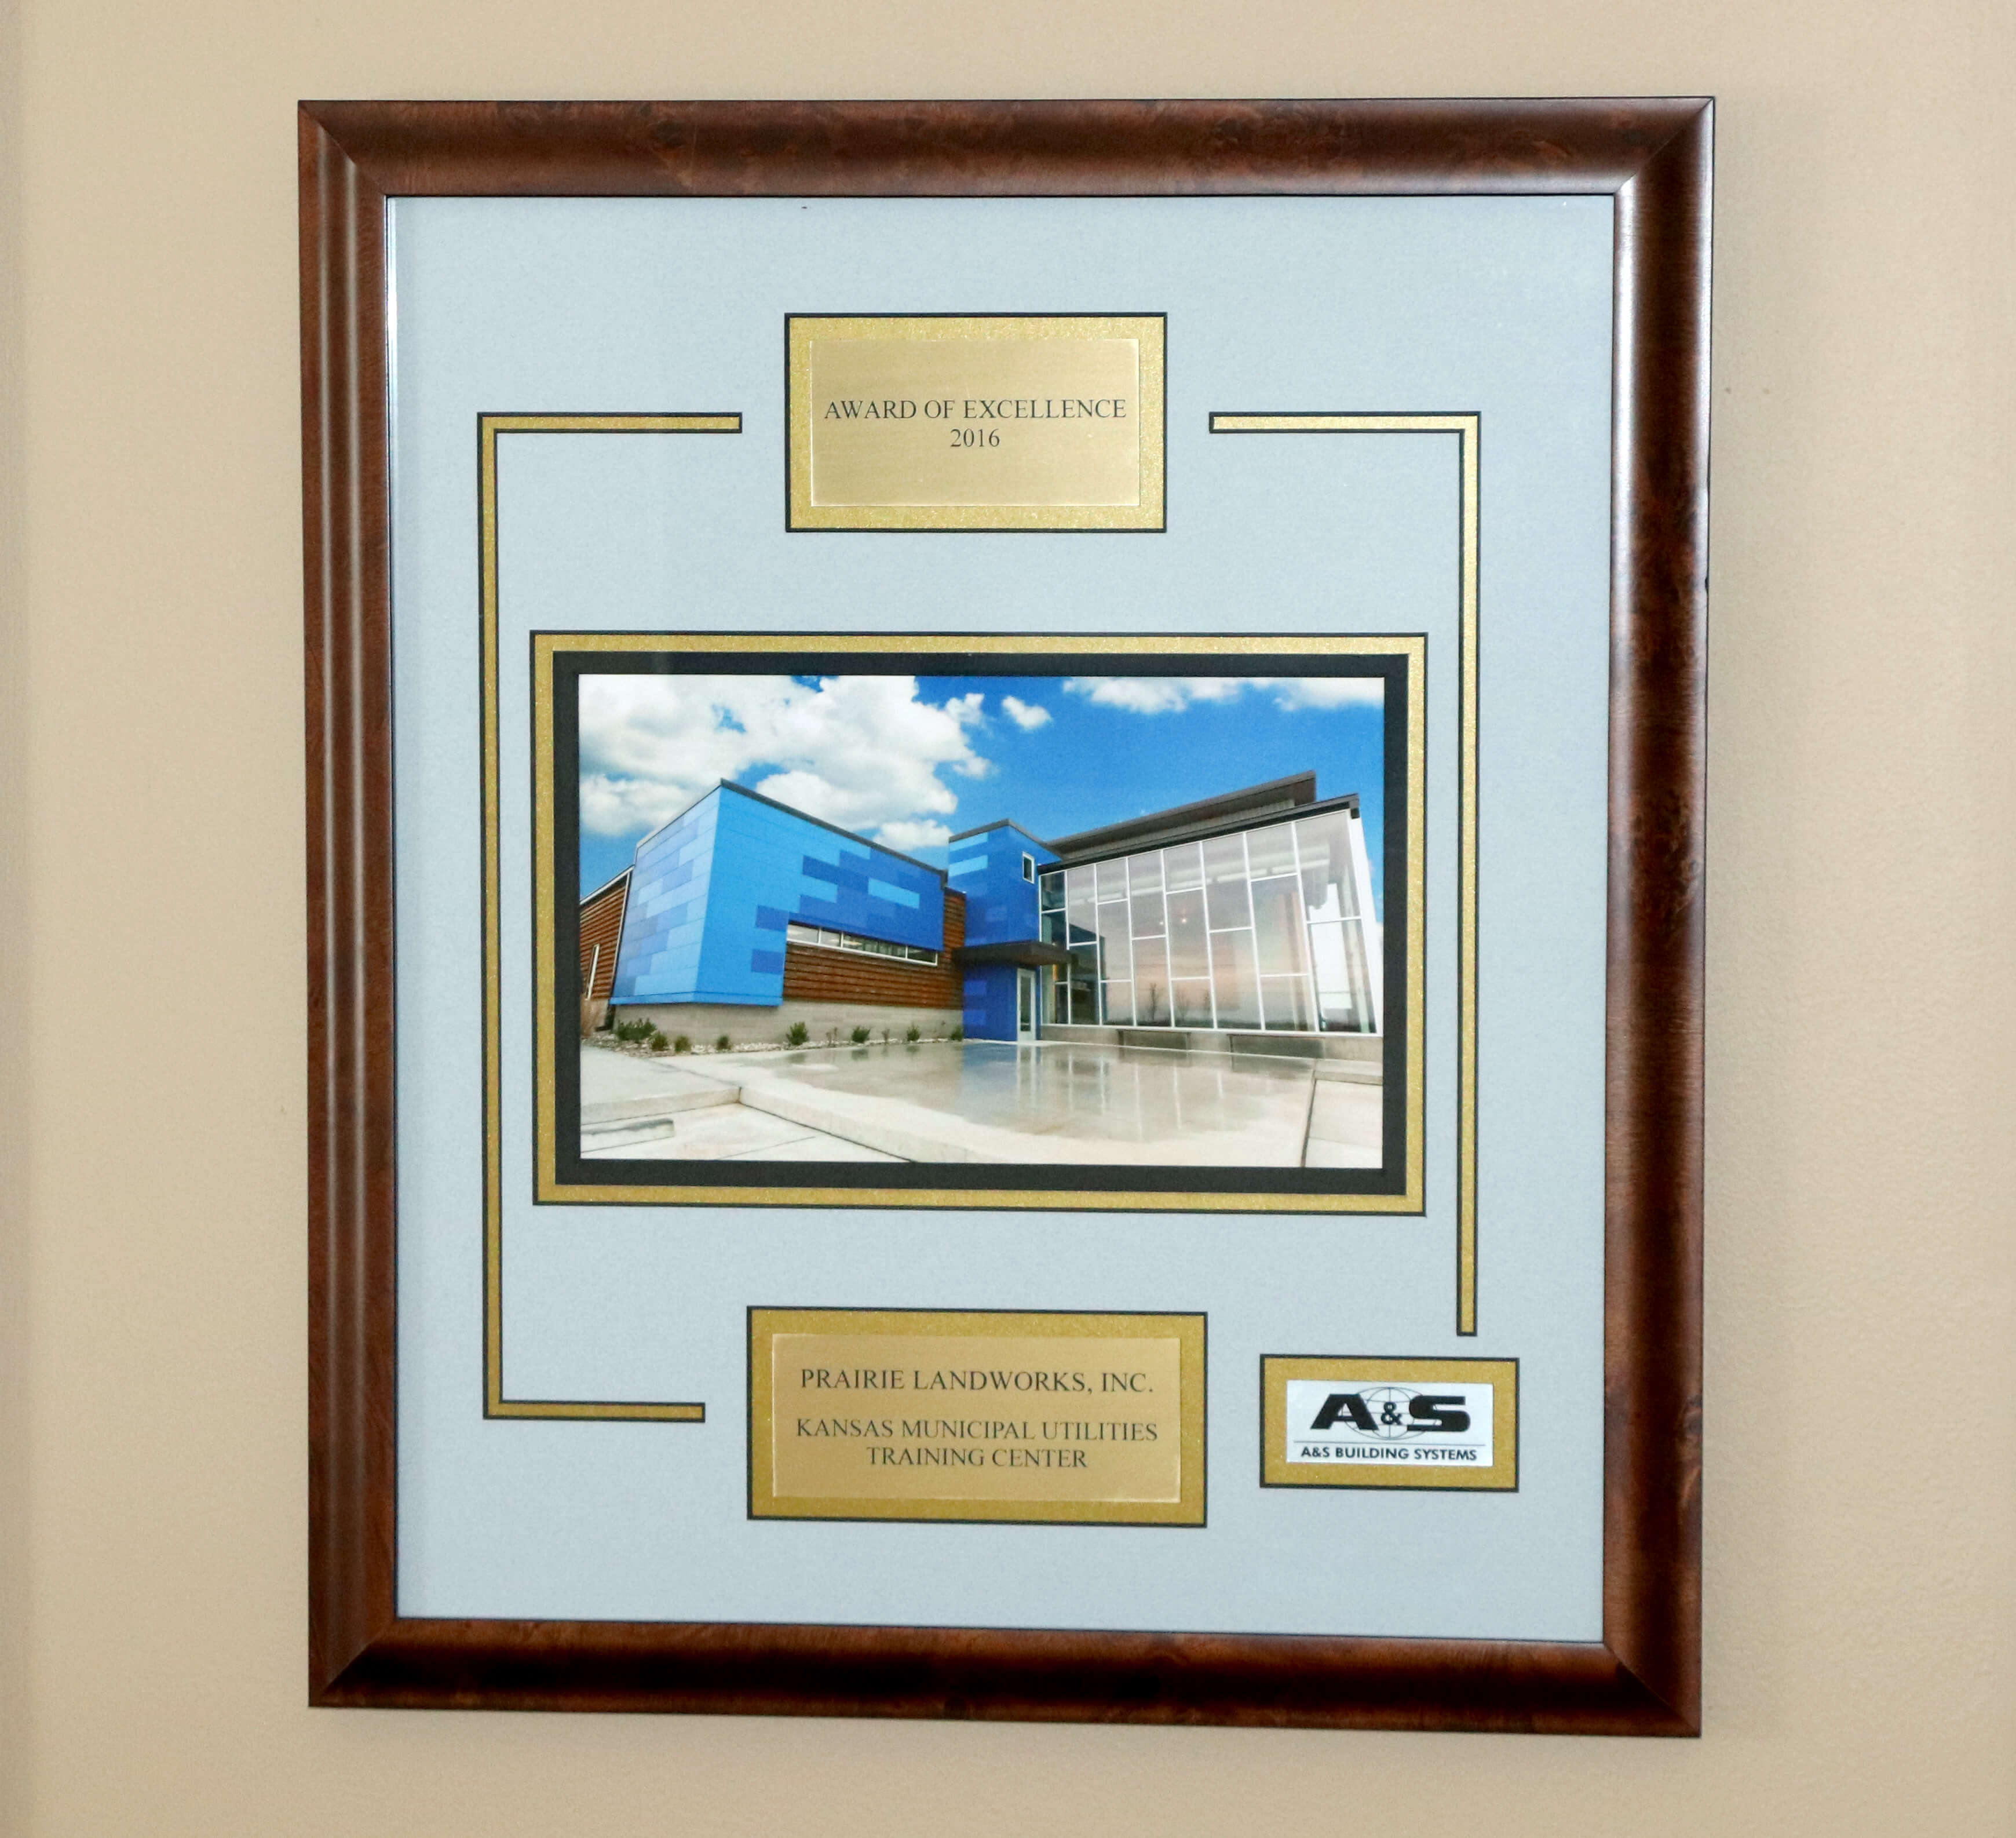 PLI honored with A&S award for KMU Training Center